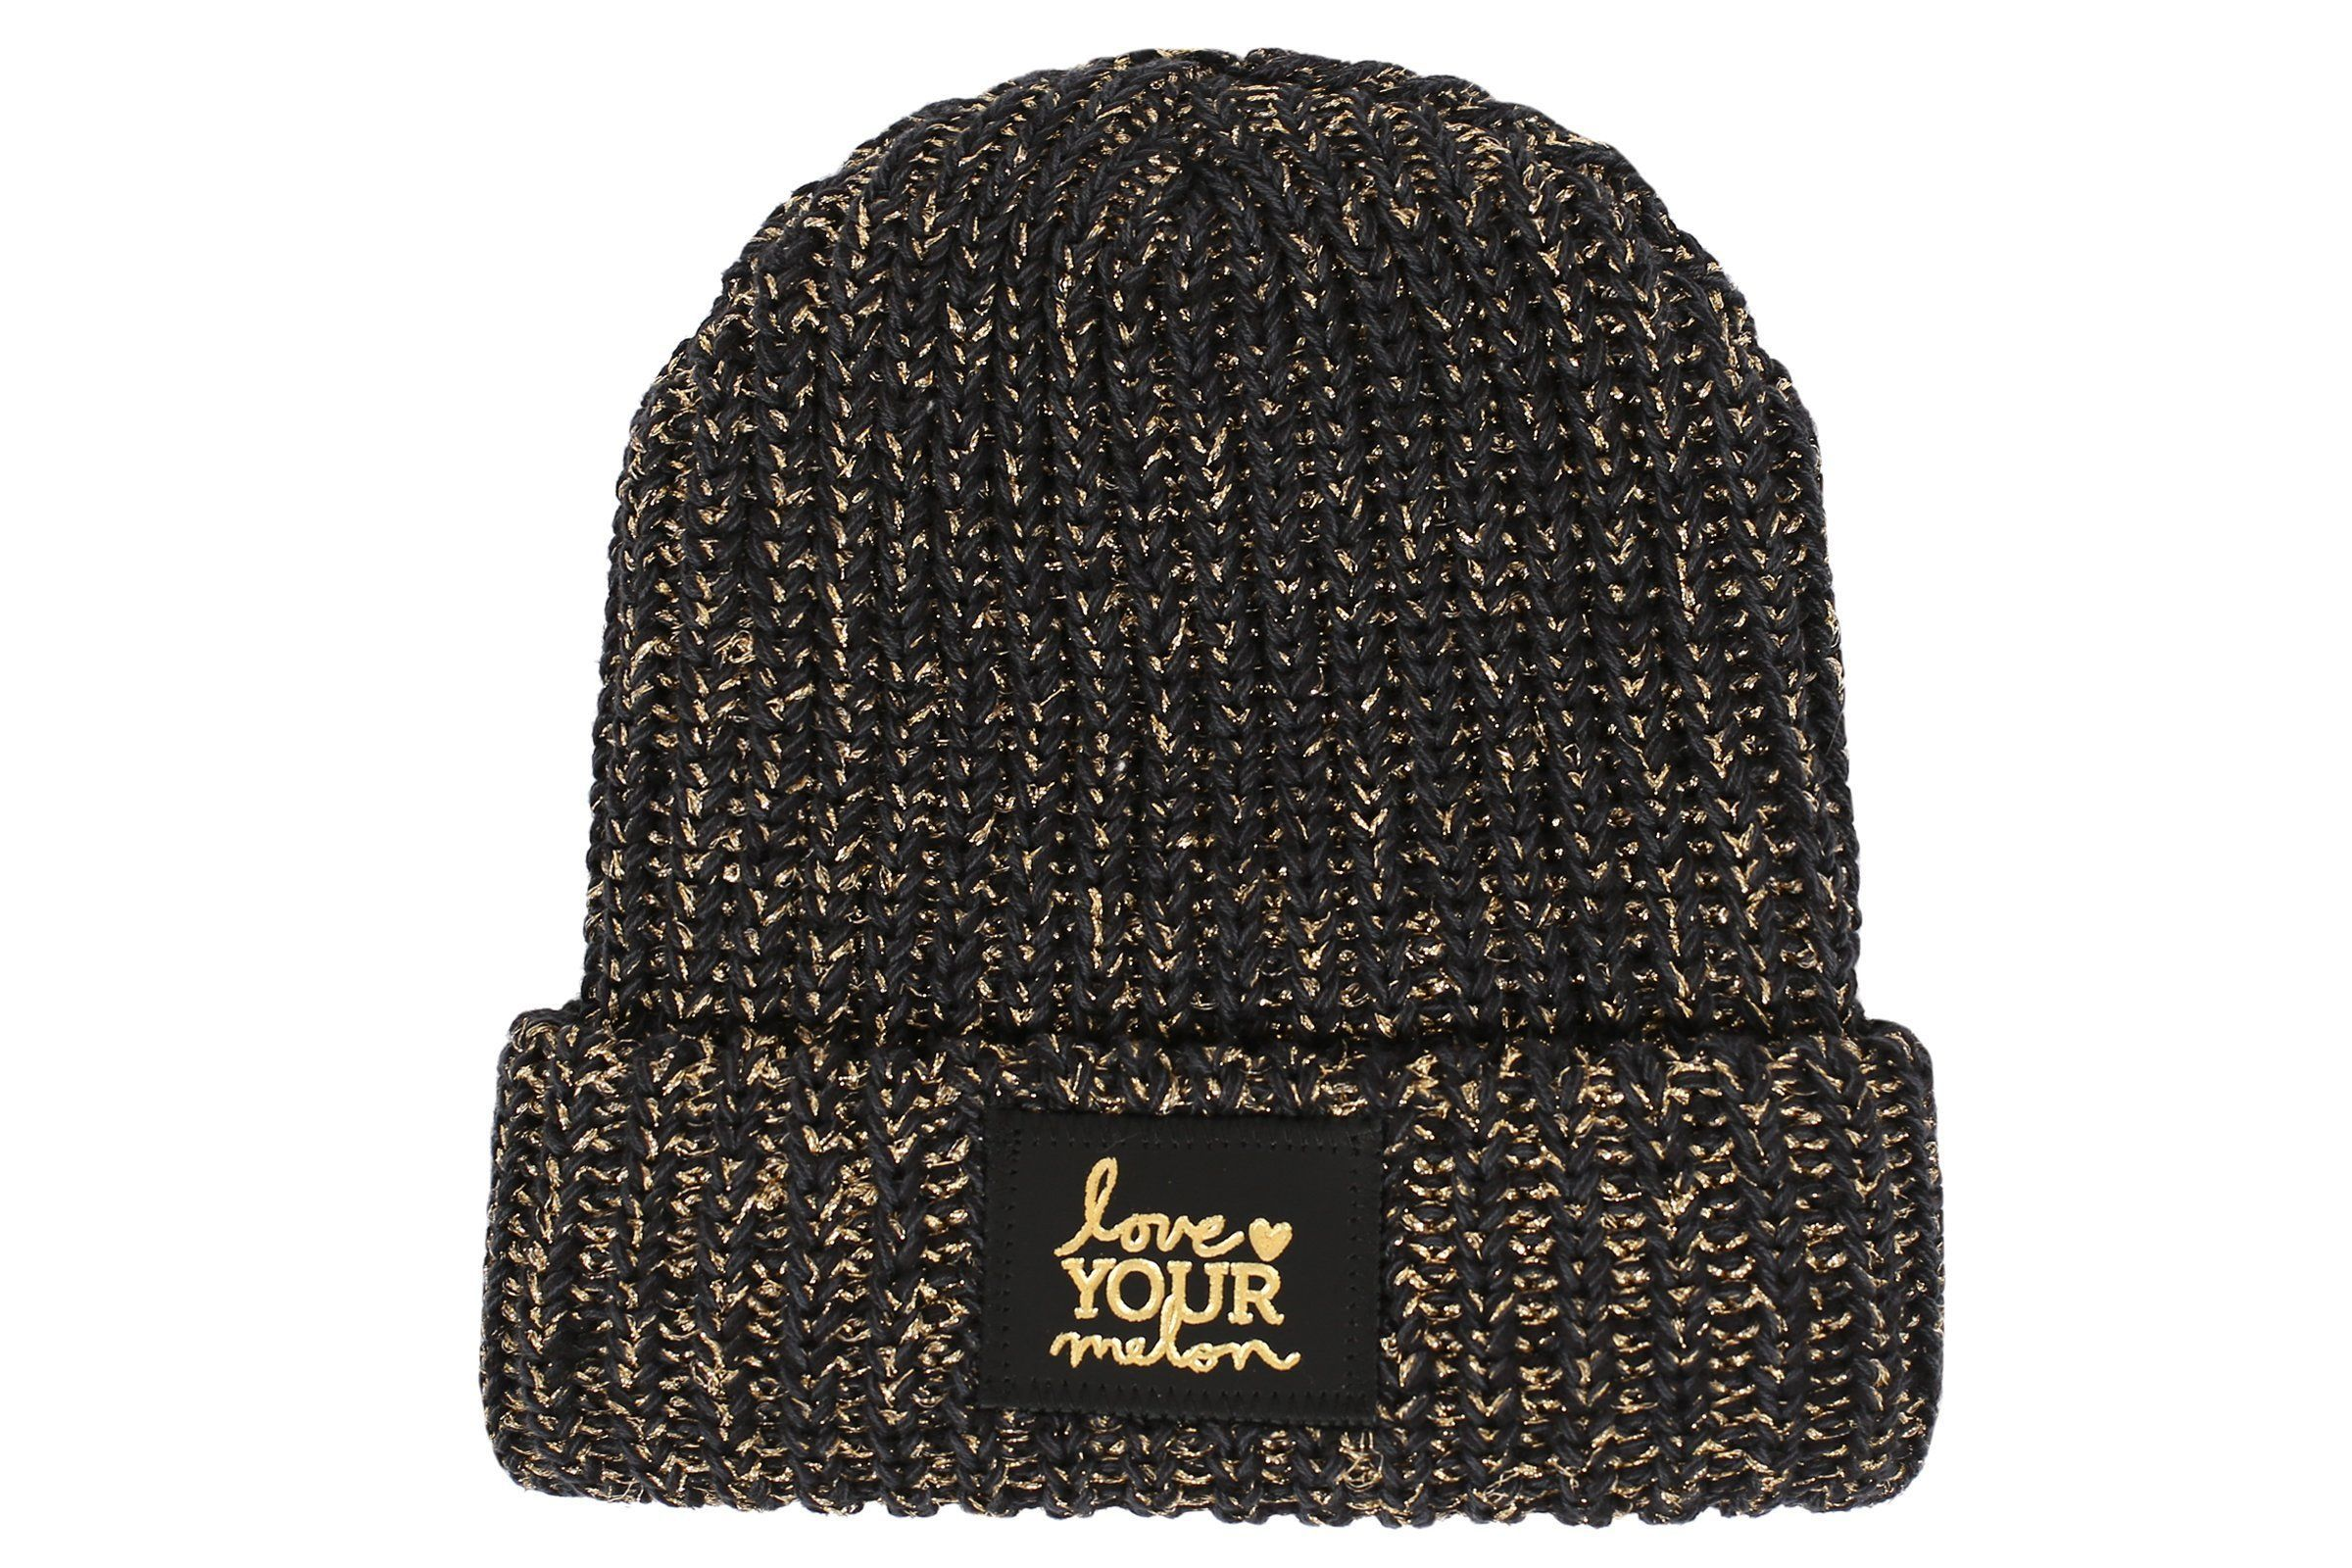 b5a9cb1710139  35 - Love Your Melon - Beanie - Smoke Speckled Metallic Gold Yarn Cuffed  Beanie